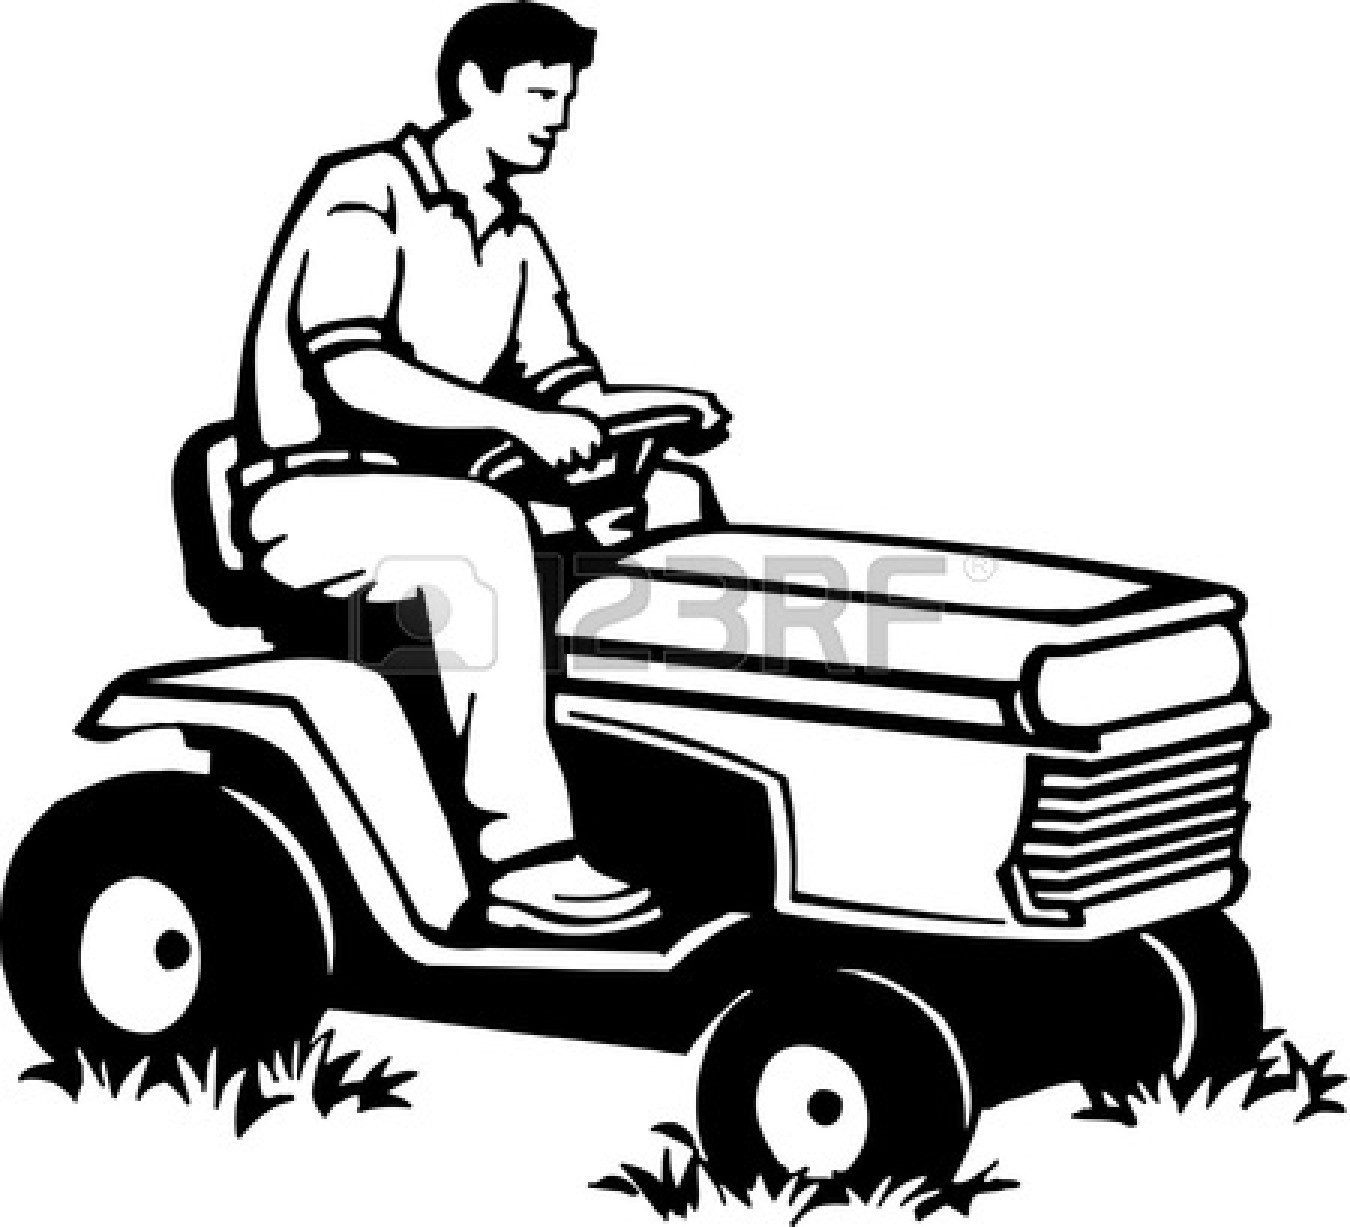 Lawn Mower Clipart Black And White | Clipart Panda - Free ...